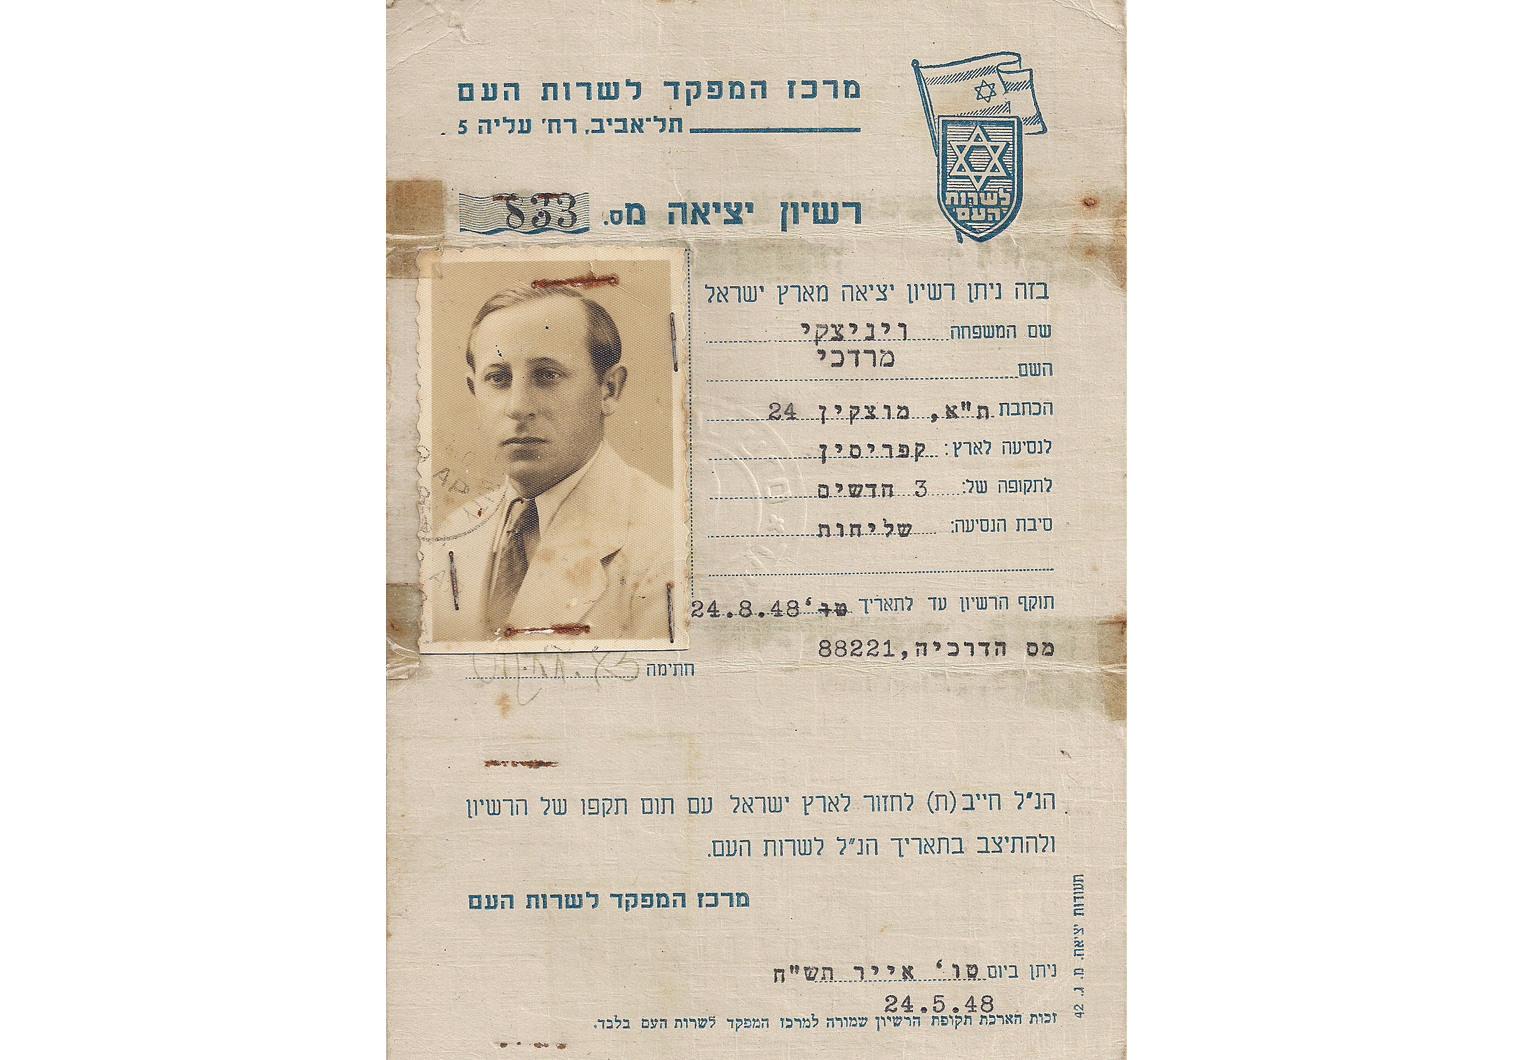 1948 interim travel document